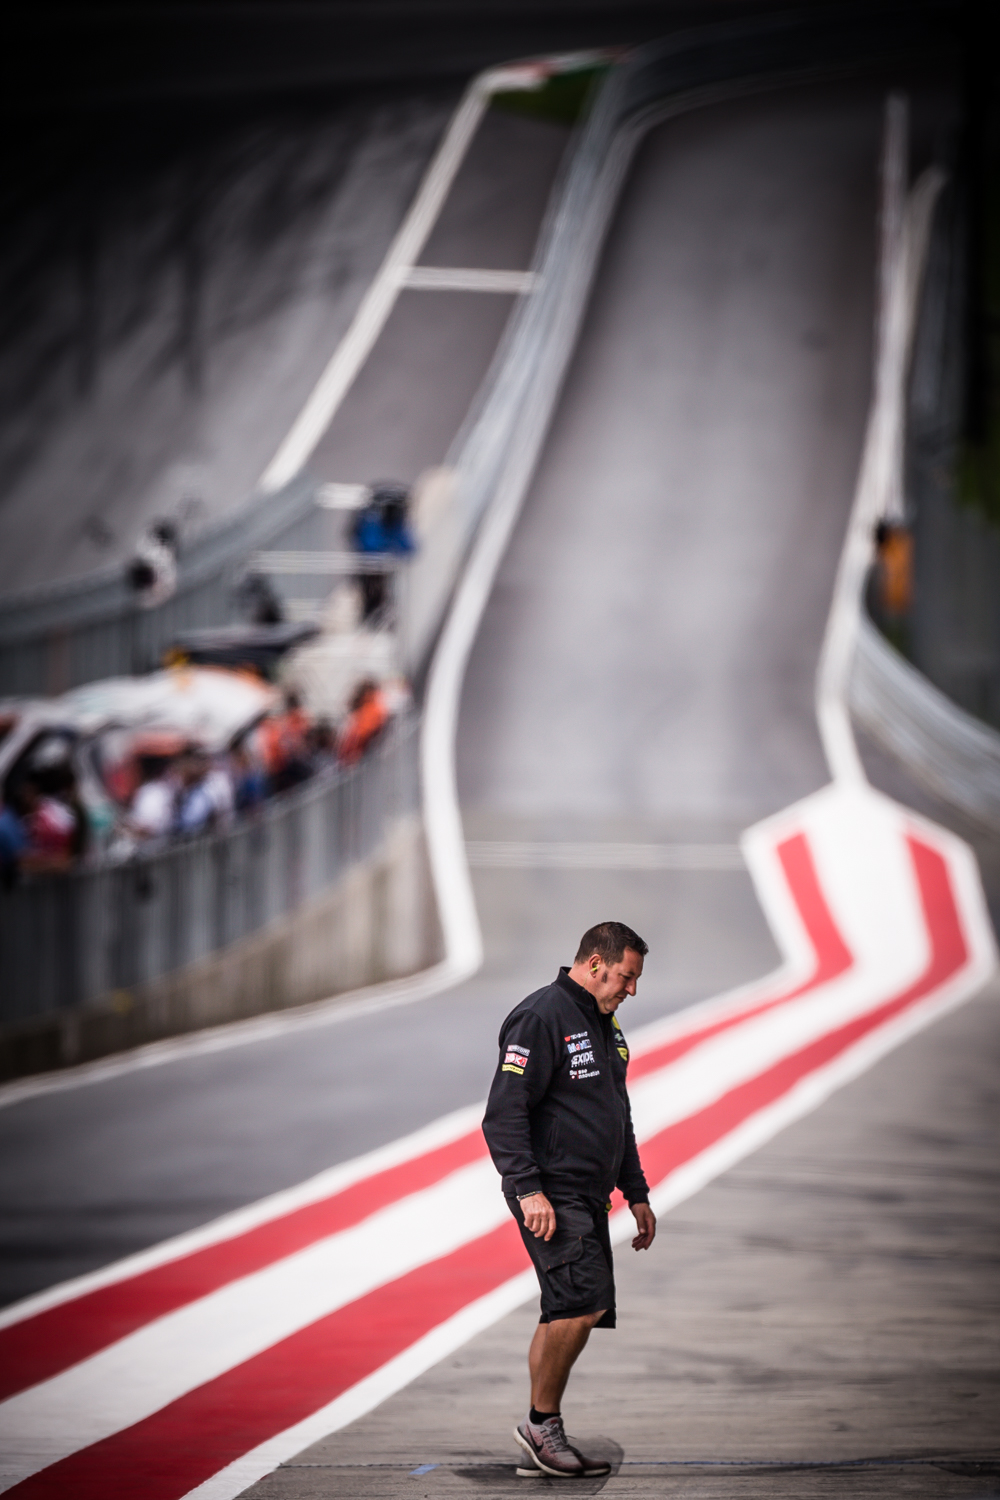 INTO THE PIT LANE